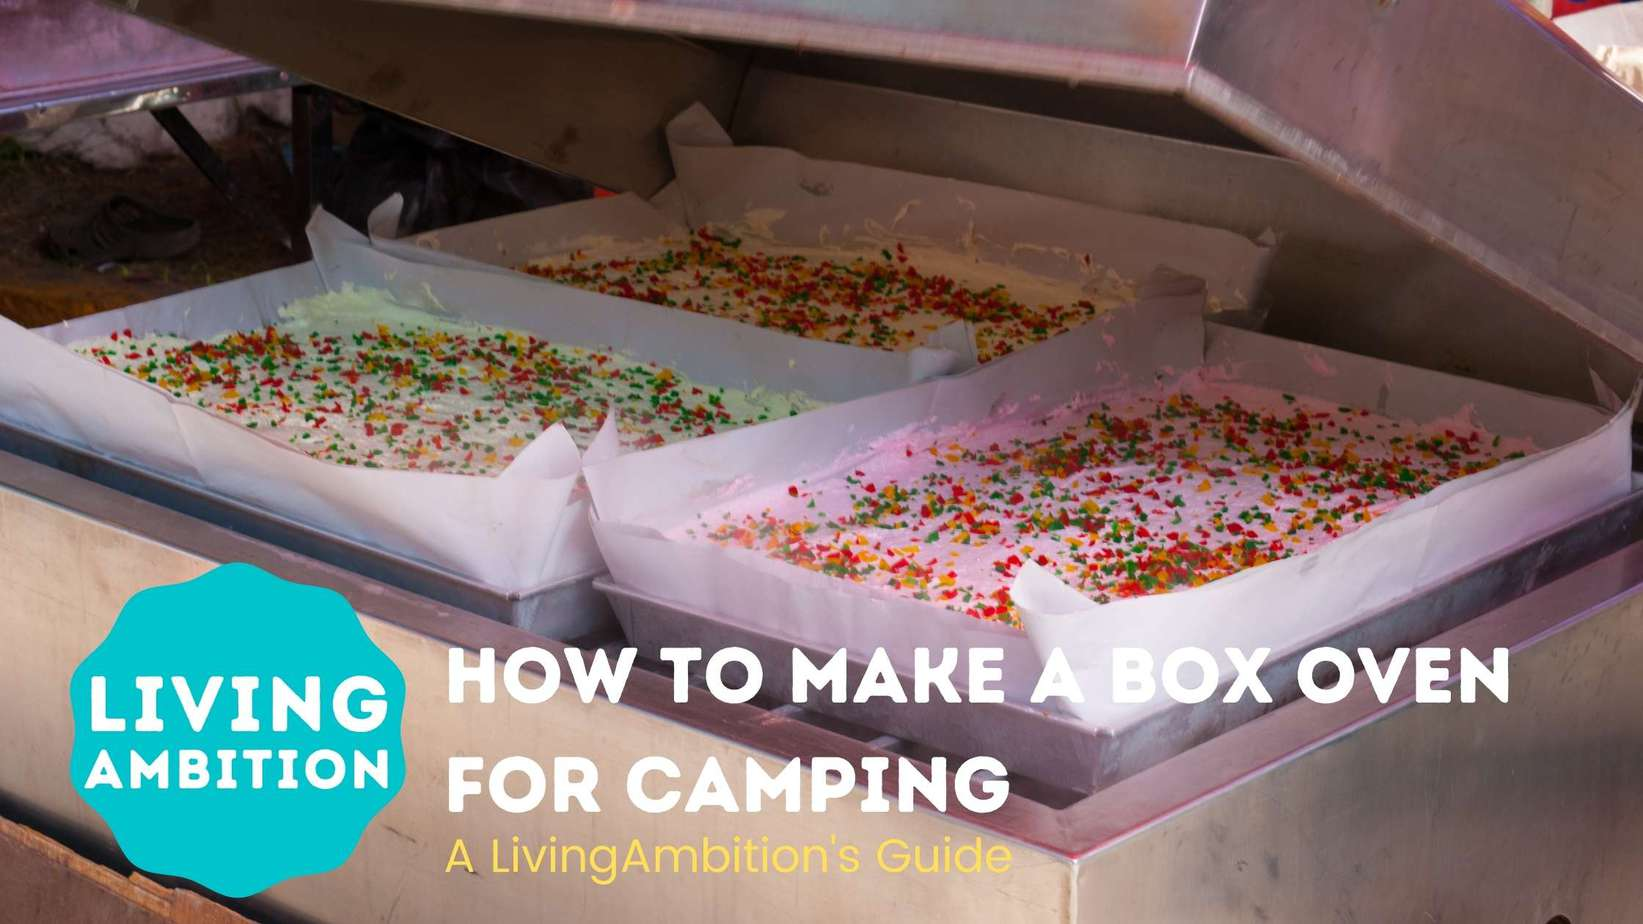 how to make a box oven for camping